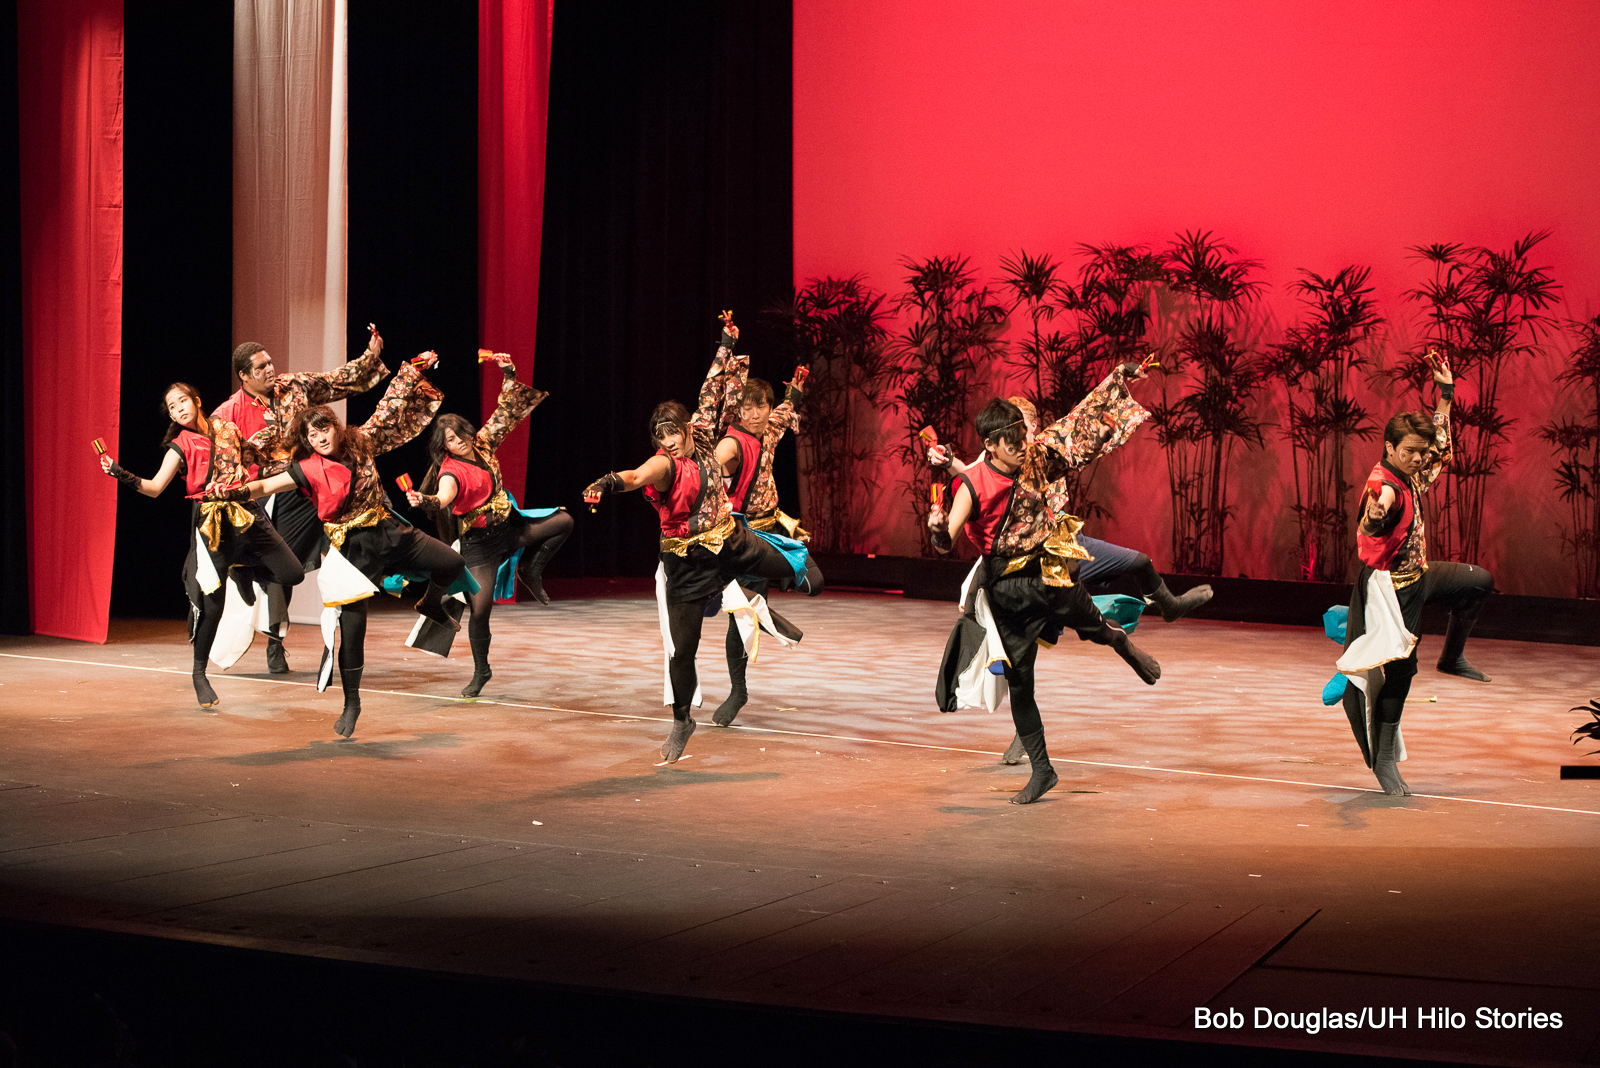 Group of women and men, black and red costumes, leaping up with right legs and right arms extended and left legs and arms angling back and away.